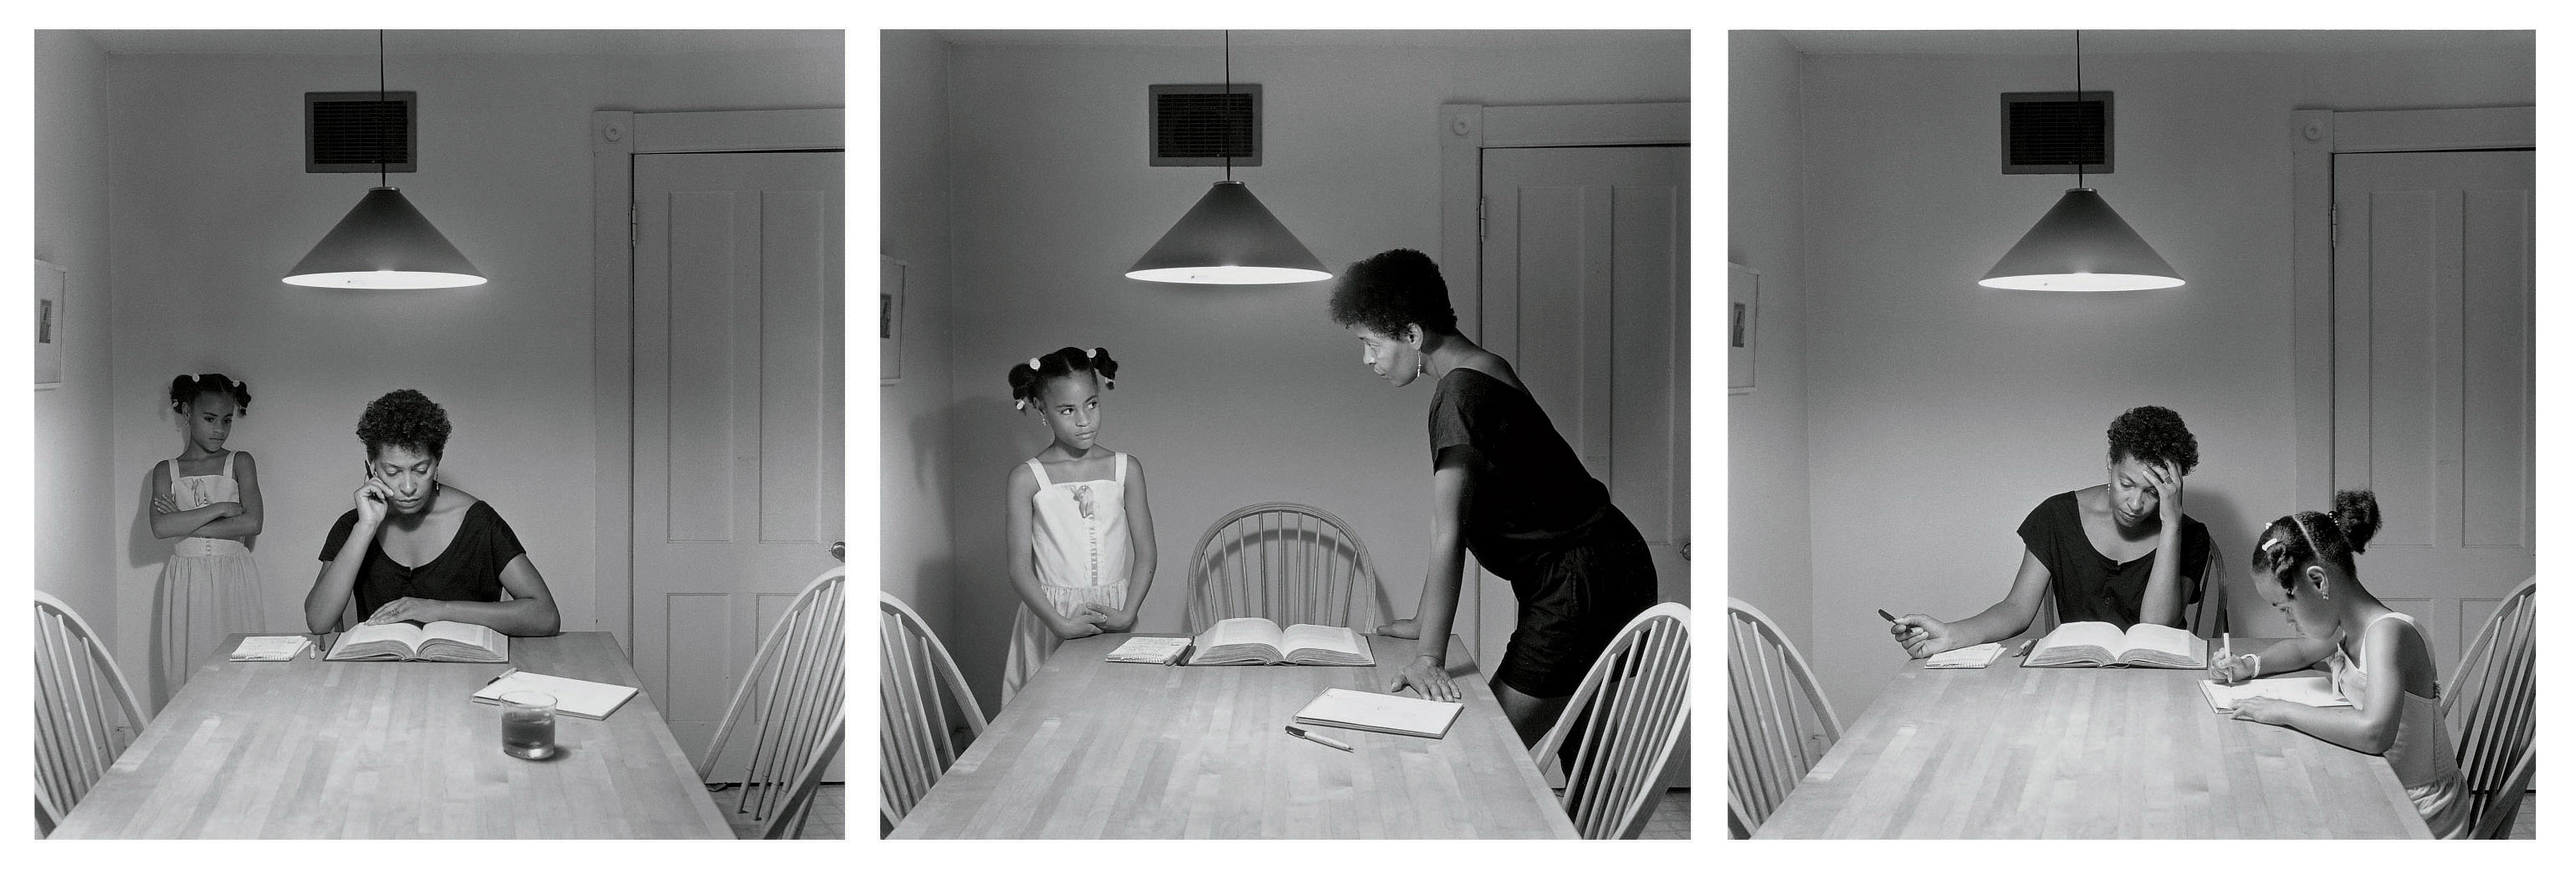 Untitled #2450, from Kitchen Table Series, 1990